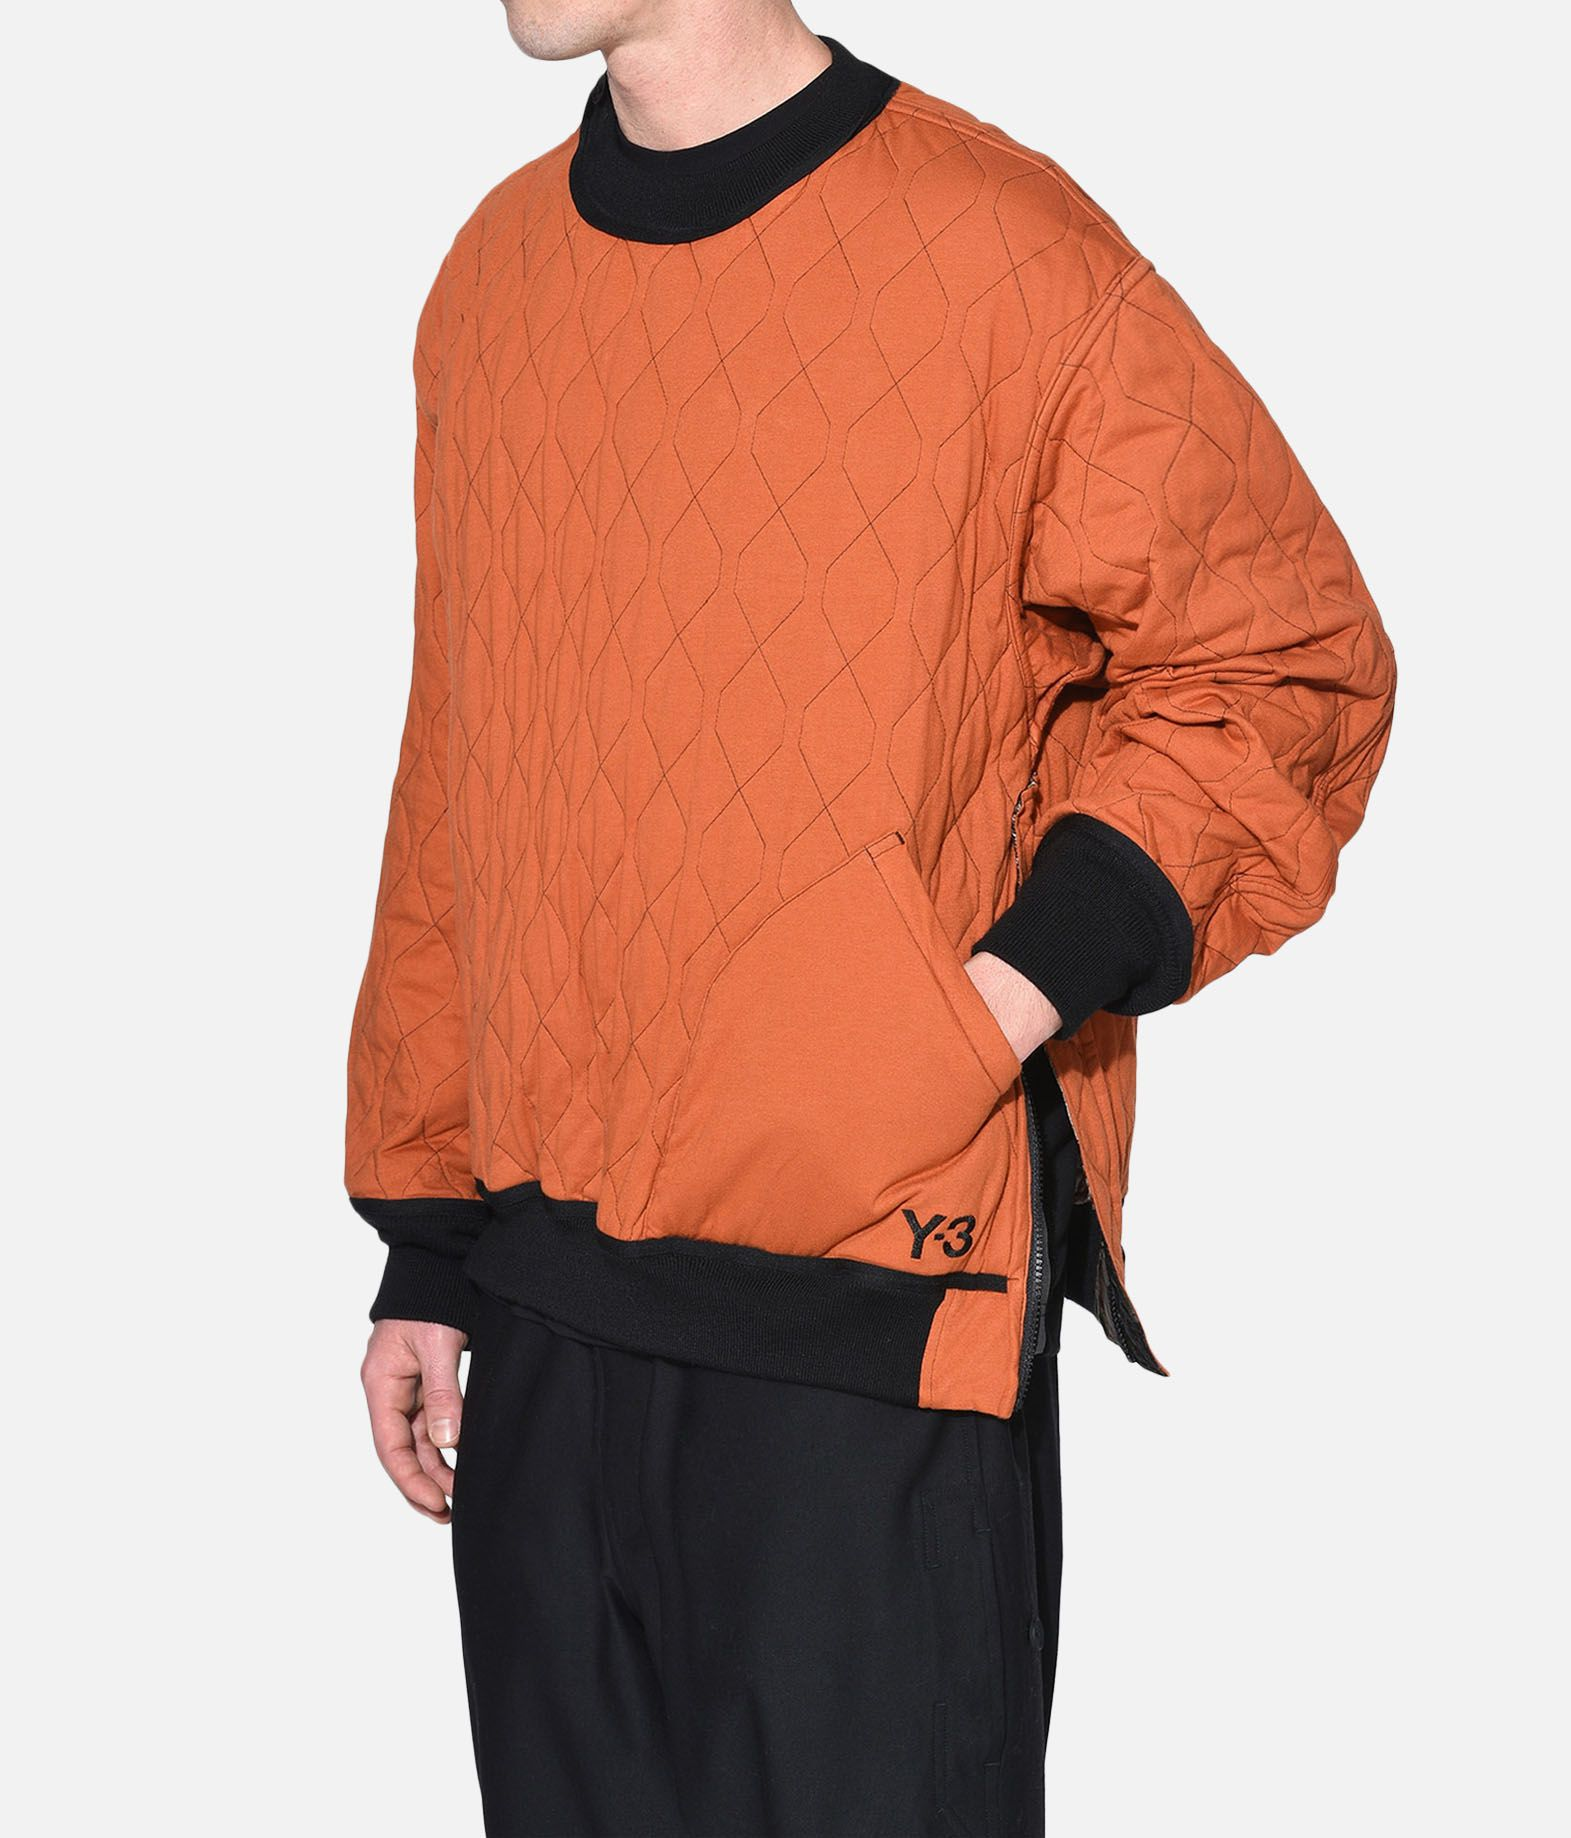 Y-3 Y-3 AOP Quilted Sweater スウェット メンズ e